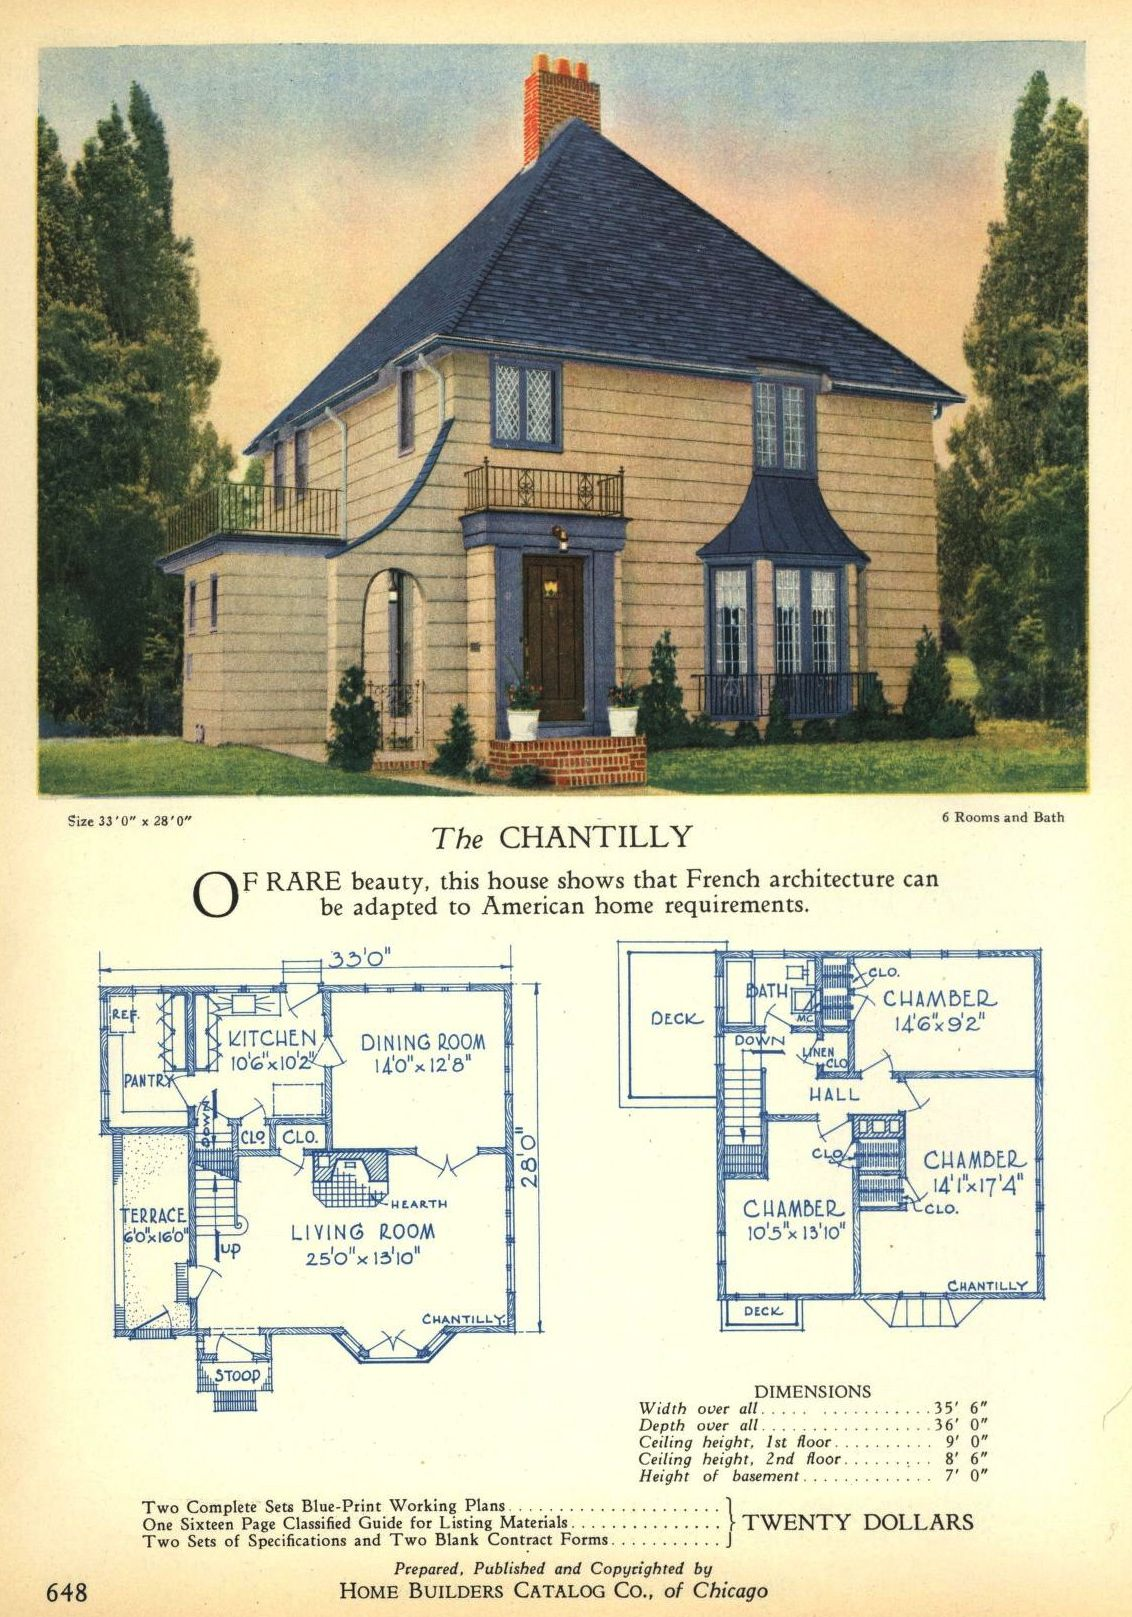 Home Builders Catalog: Plans Of All Types Of Small Homes : Home Builders  Catalog Co. : Free Download, Borrow, And Streaming : Internet Archive